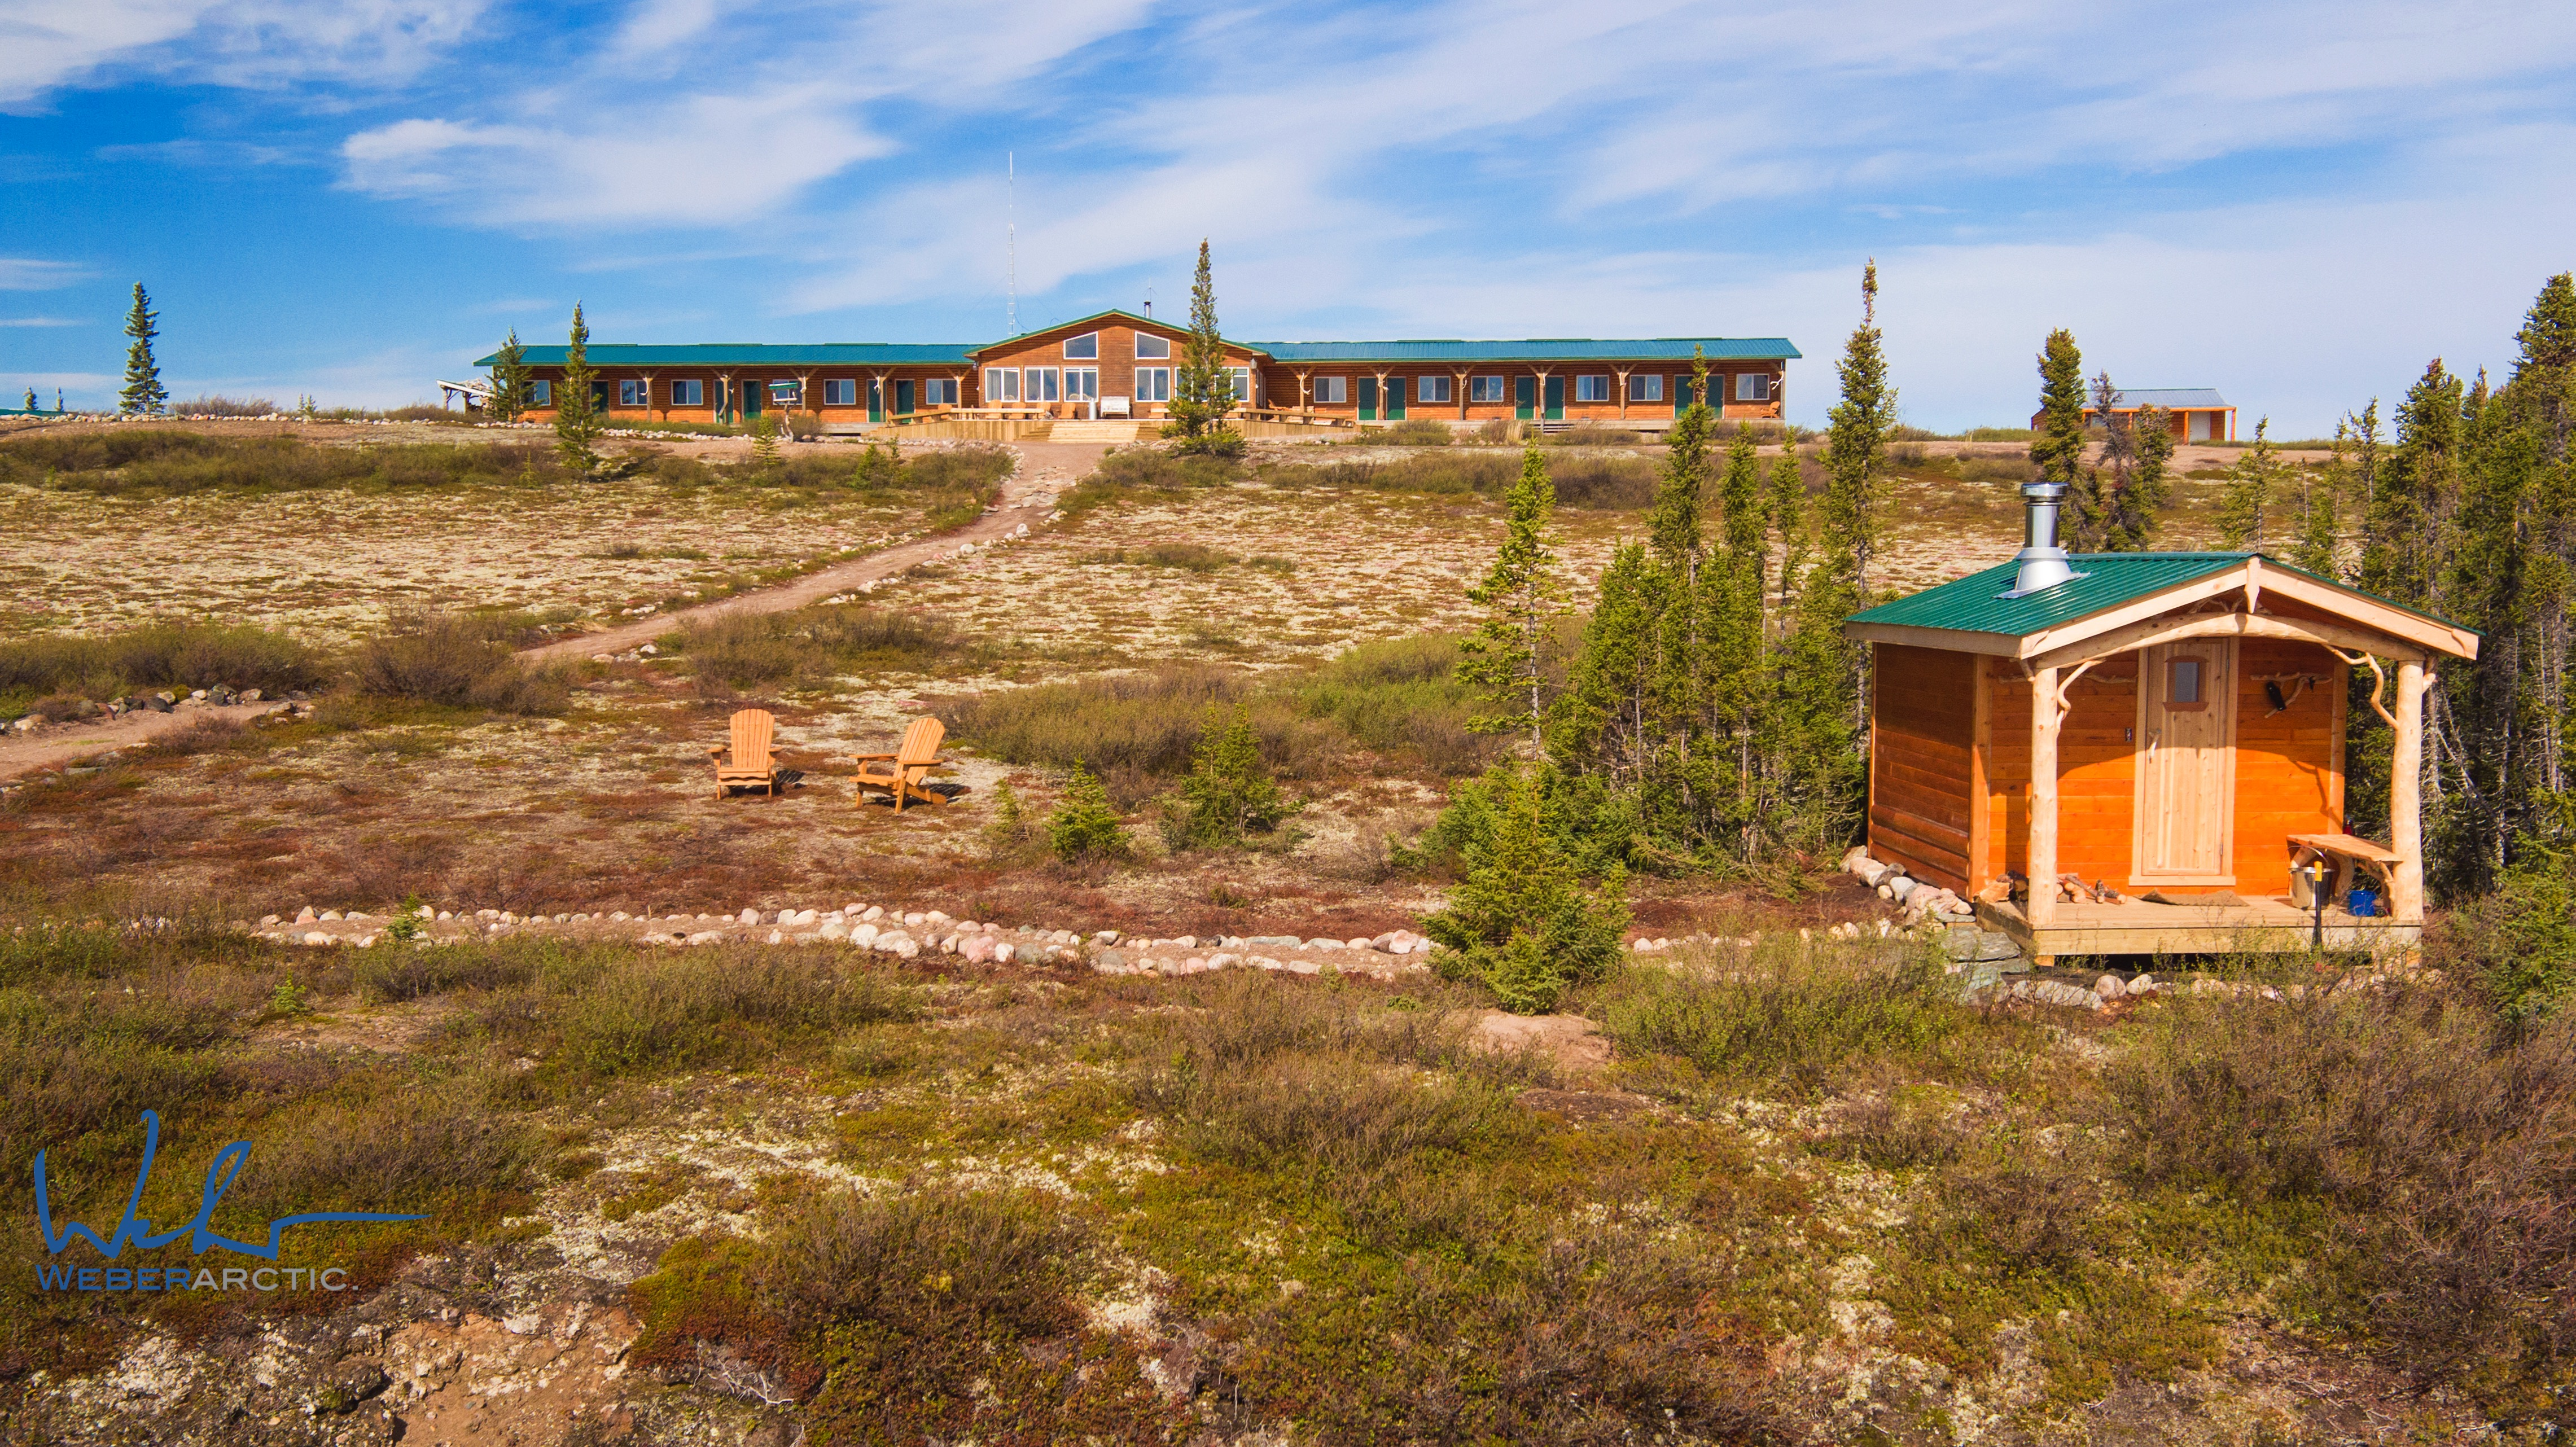 Arctic Haven Lodge & Sauna